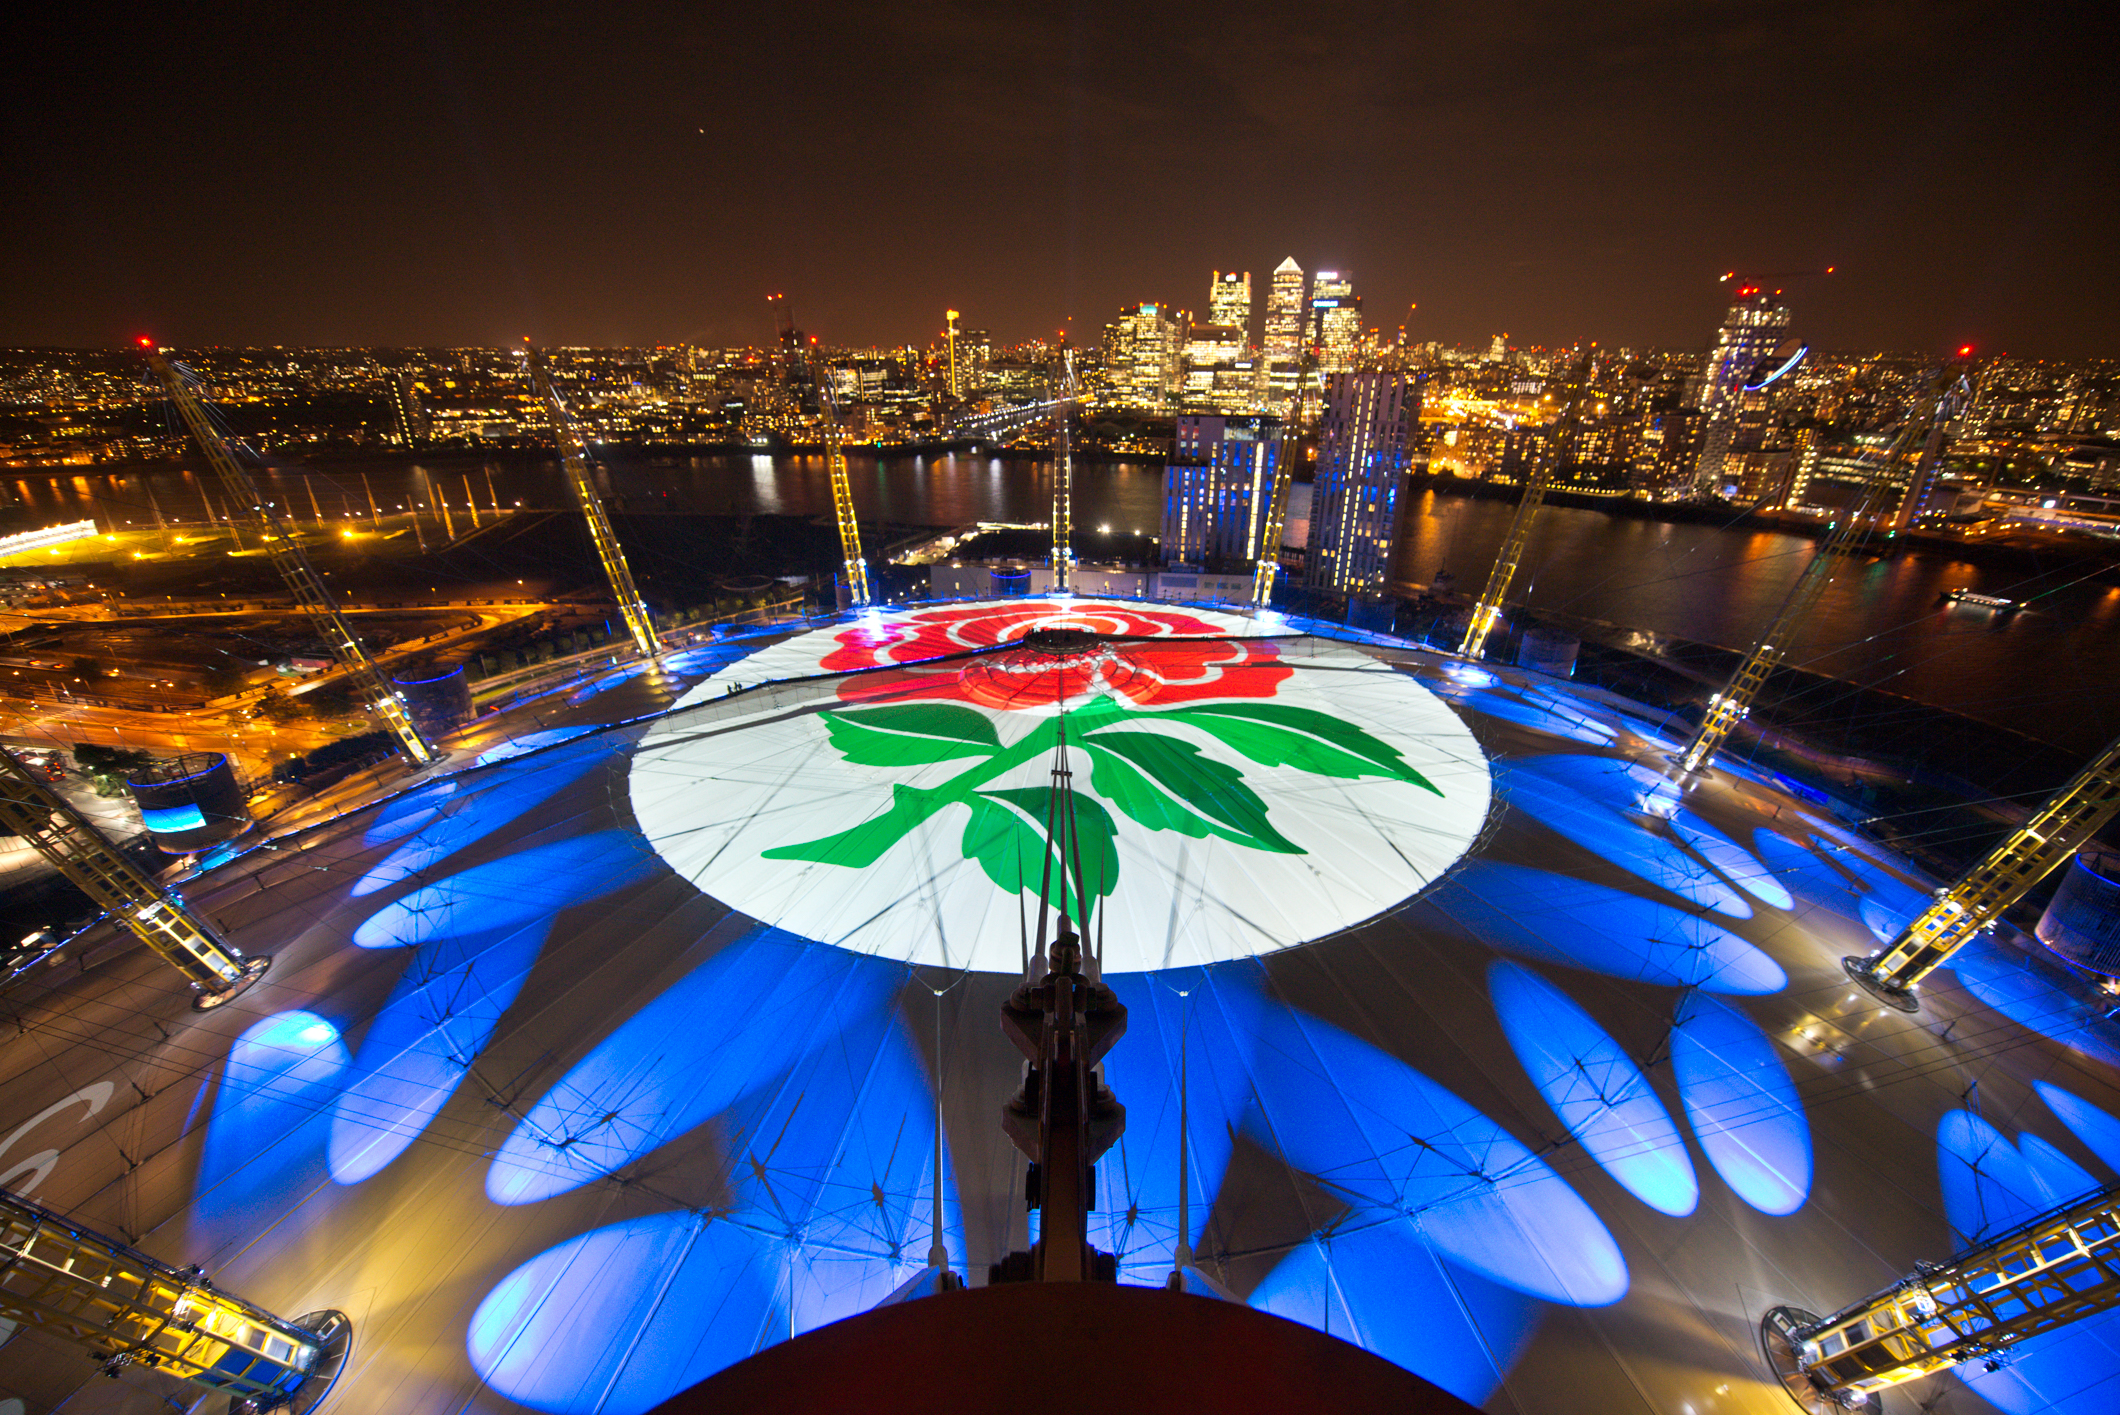 In a world first, O2 has handed over the roof of The O2 for fans to tweet messages of support for England Rugby using #WearTheRose